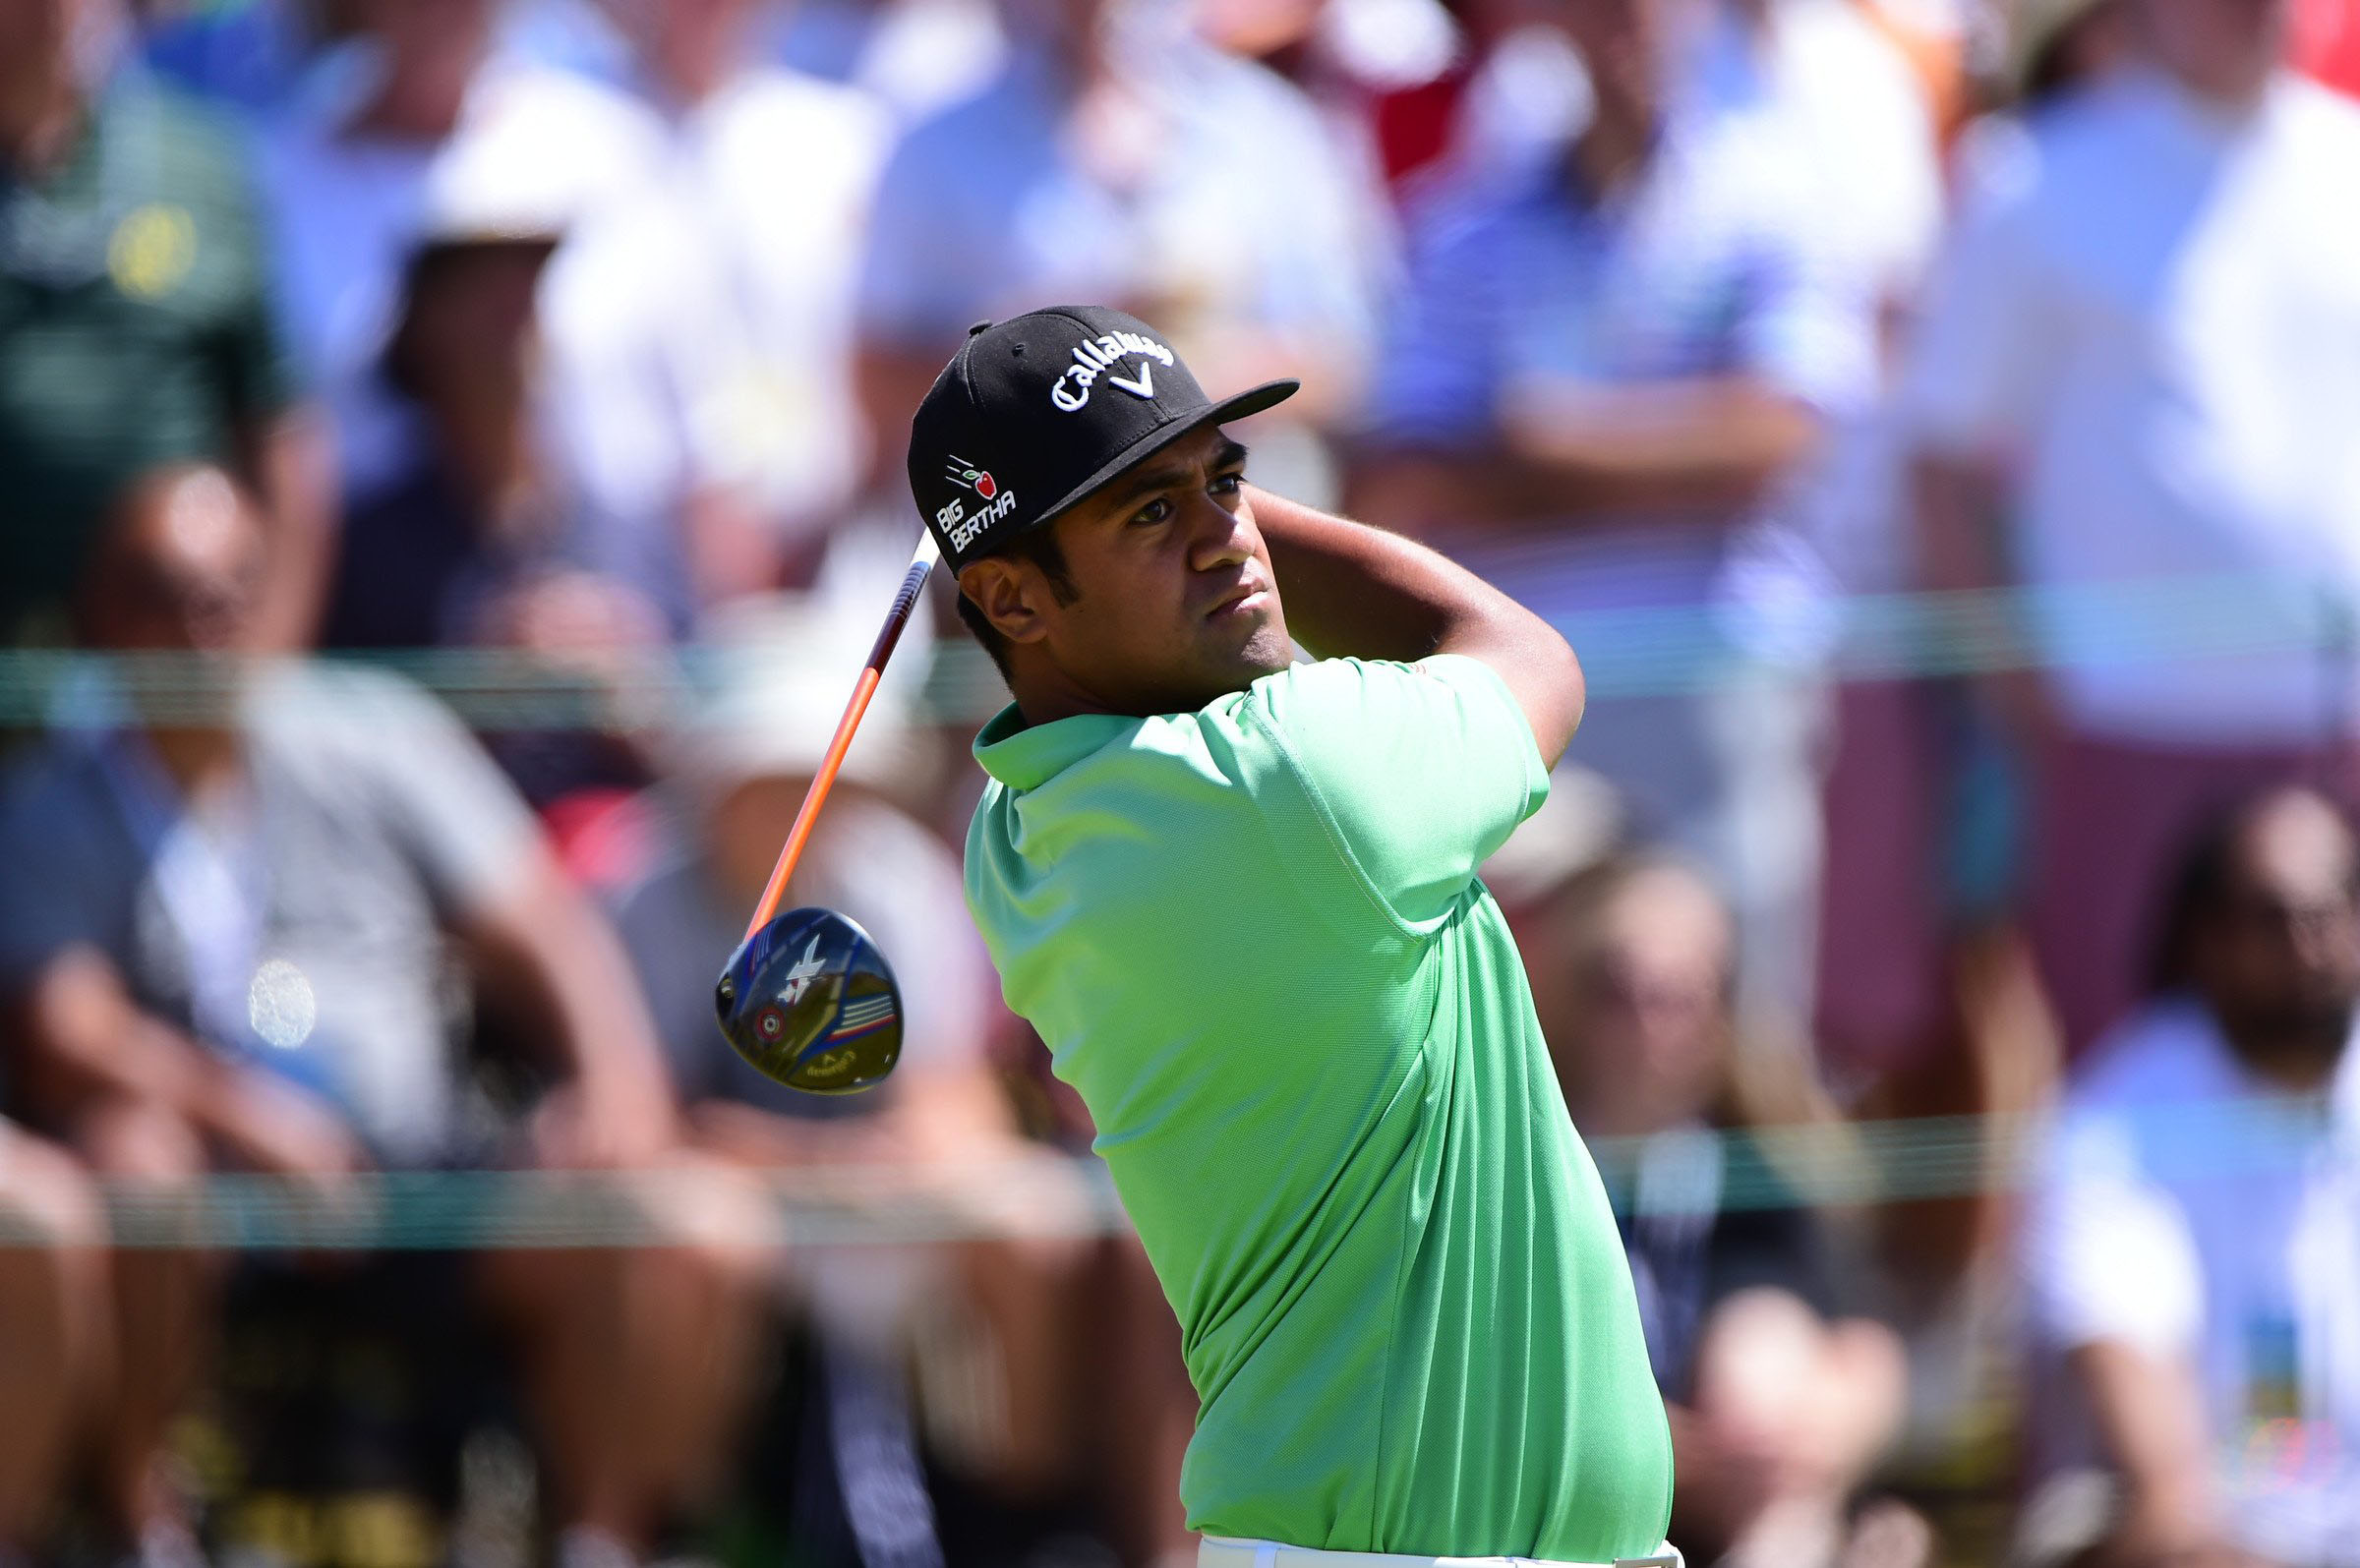 Tony Finau finished T14 in his very first major championship, at the U.S. Open at Chambers Bay.